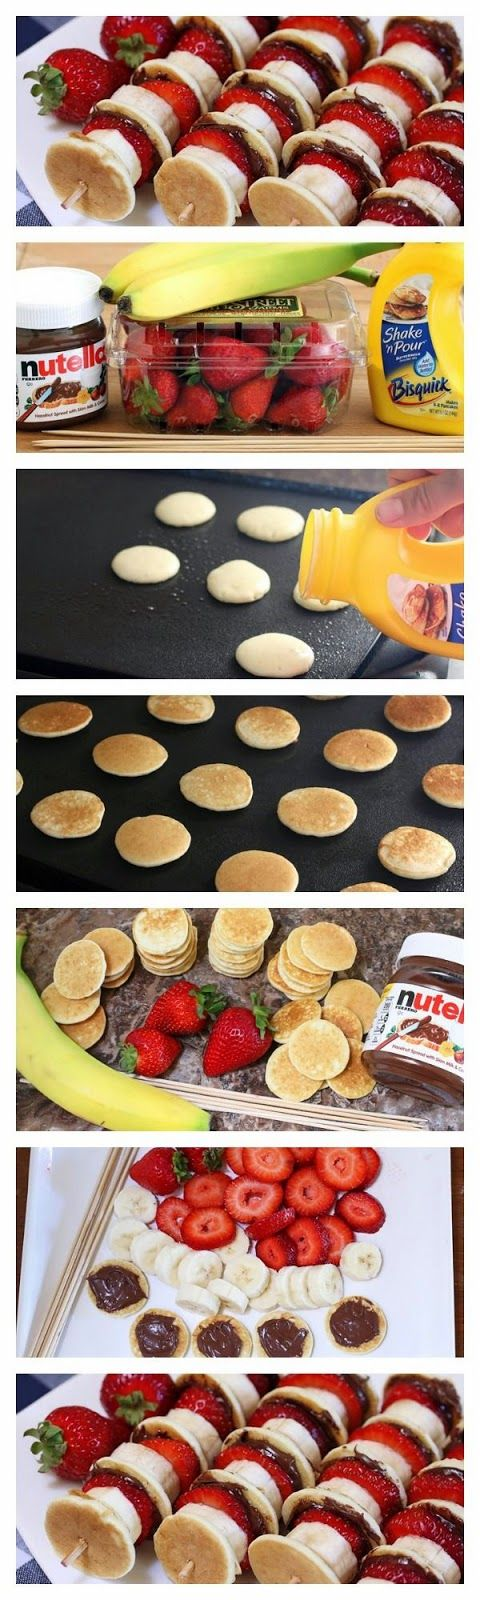 party food..this looks good...you could do this with mini waffles and chicken nuggets pancakes the banana a piece of bacon and peanut butter and call it elvis...the possibilities of things on a stick are endless...but this looks so good...great for little kids party for breakfast